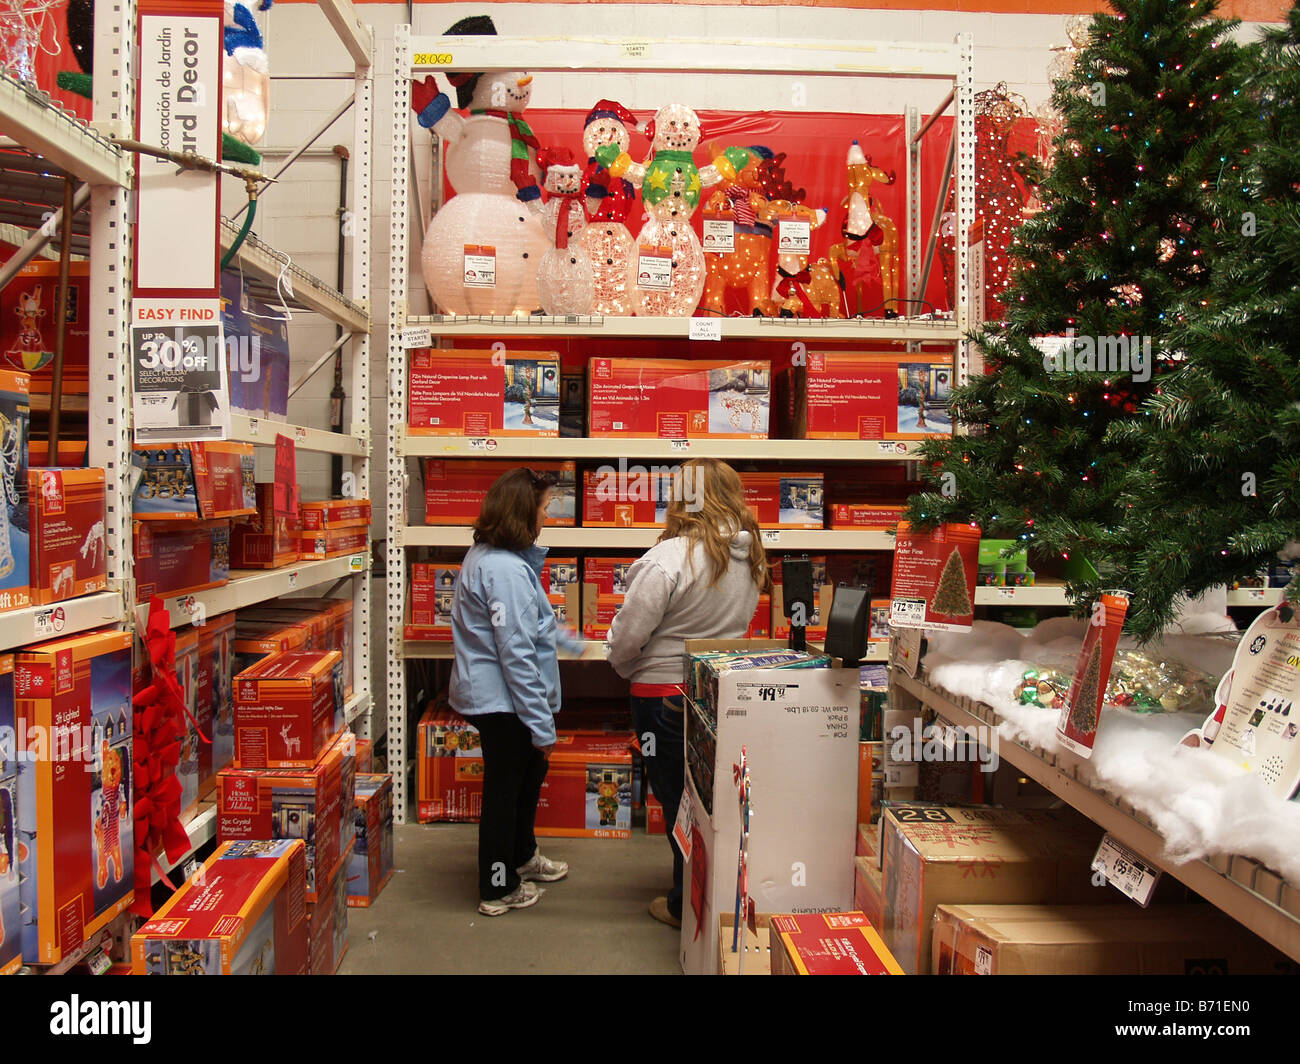 Shoppers Looking For Christmas Decorations At A Home Depot Store In Stock Photo Royalty Free